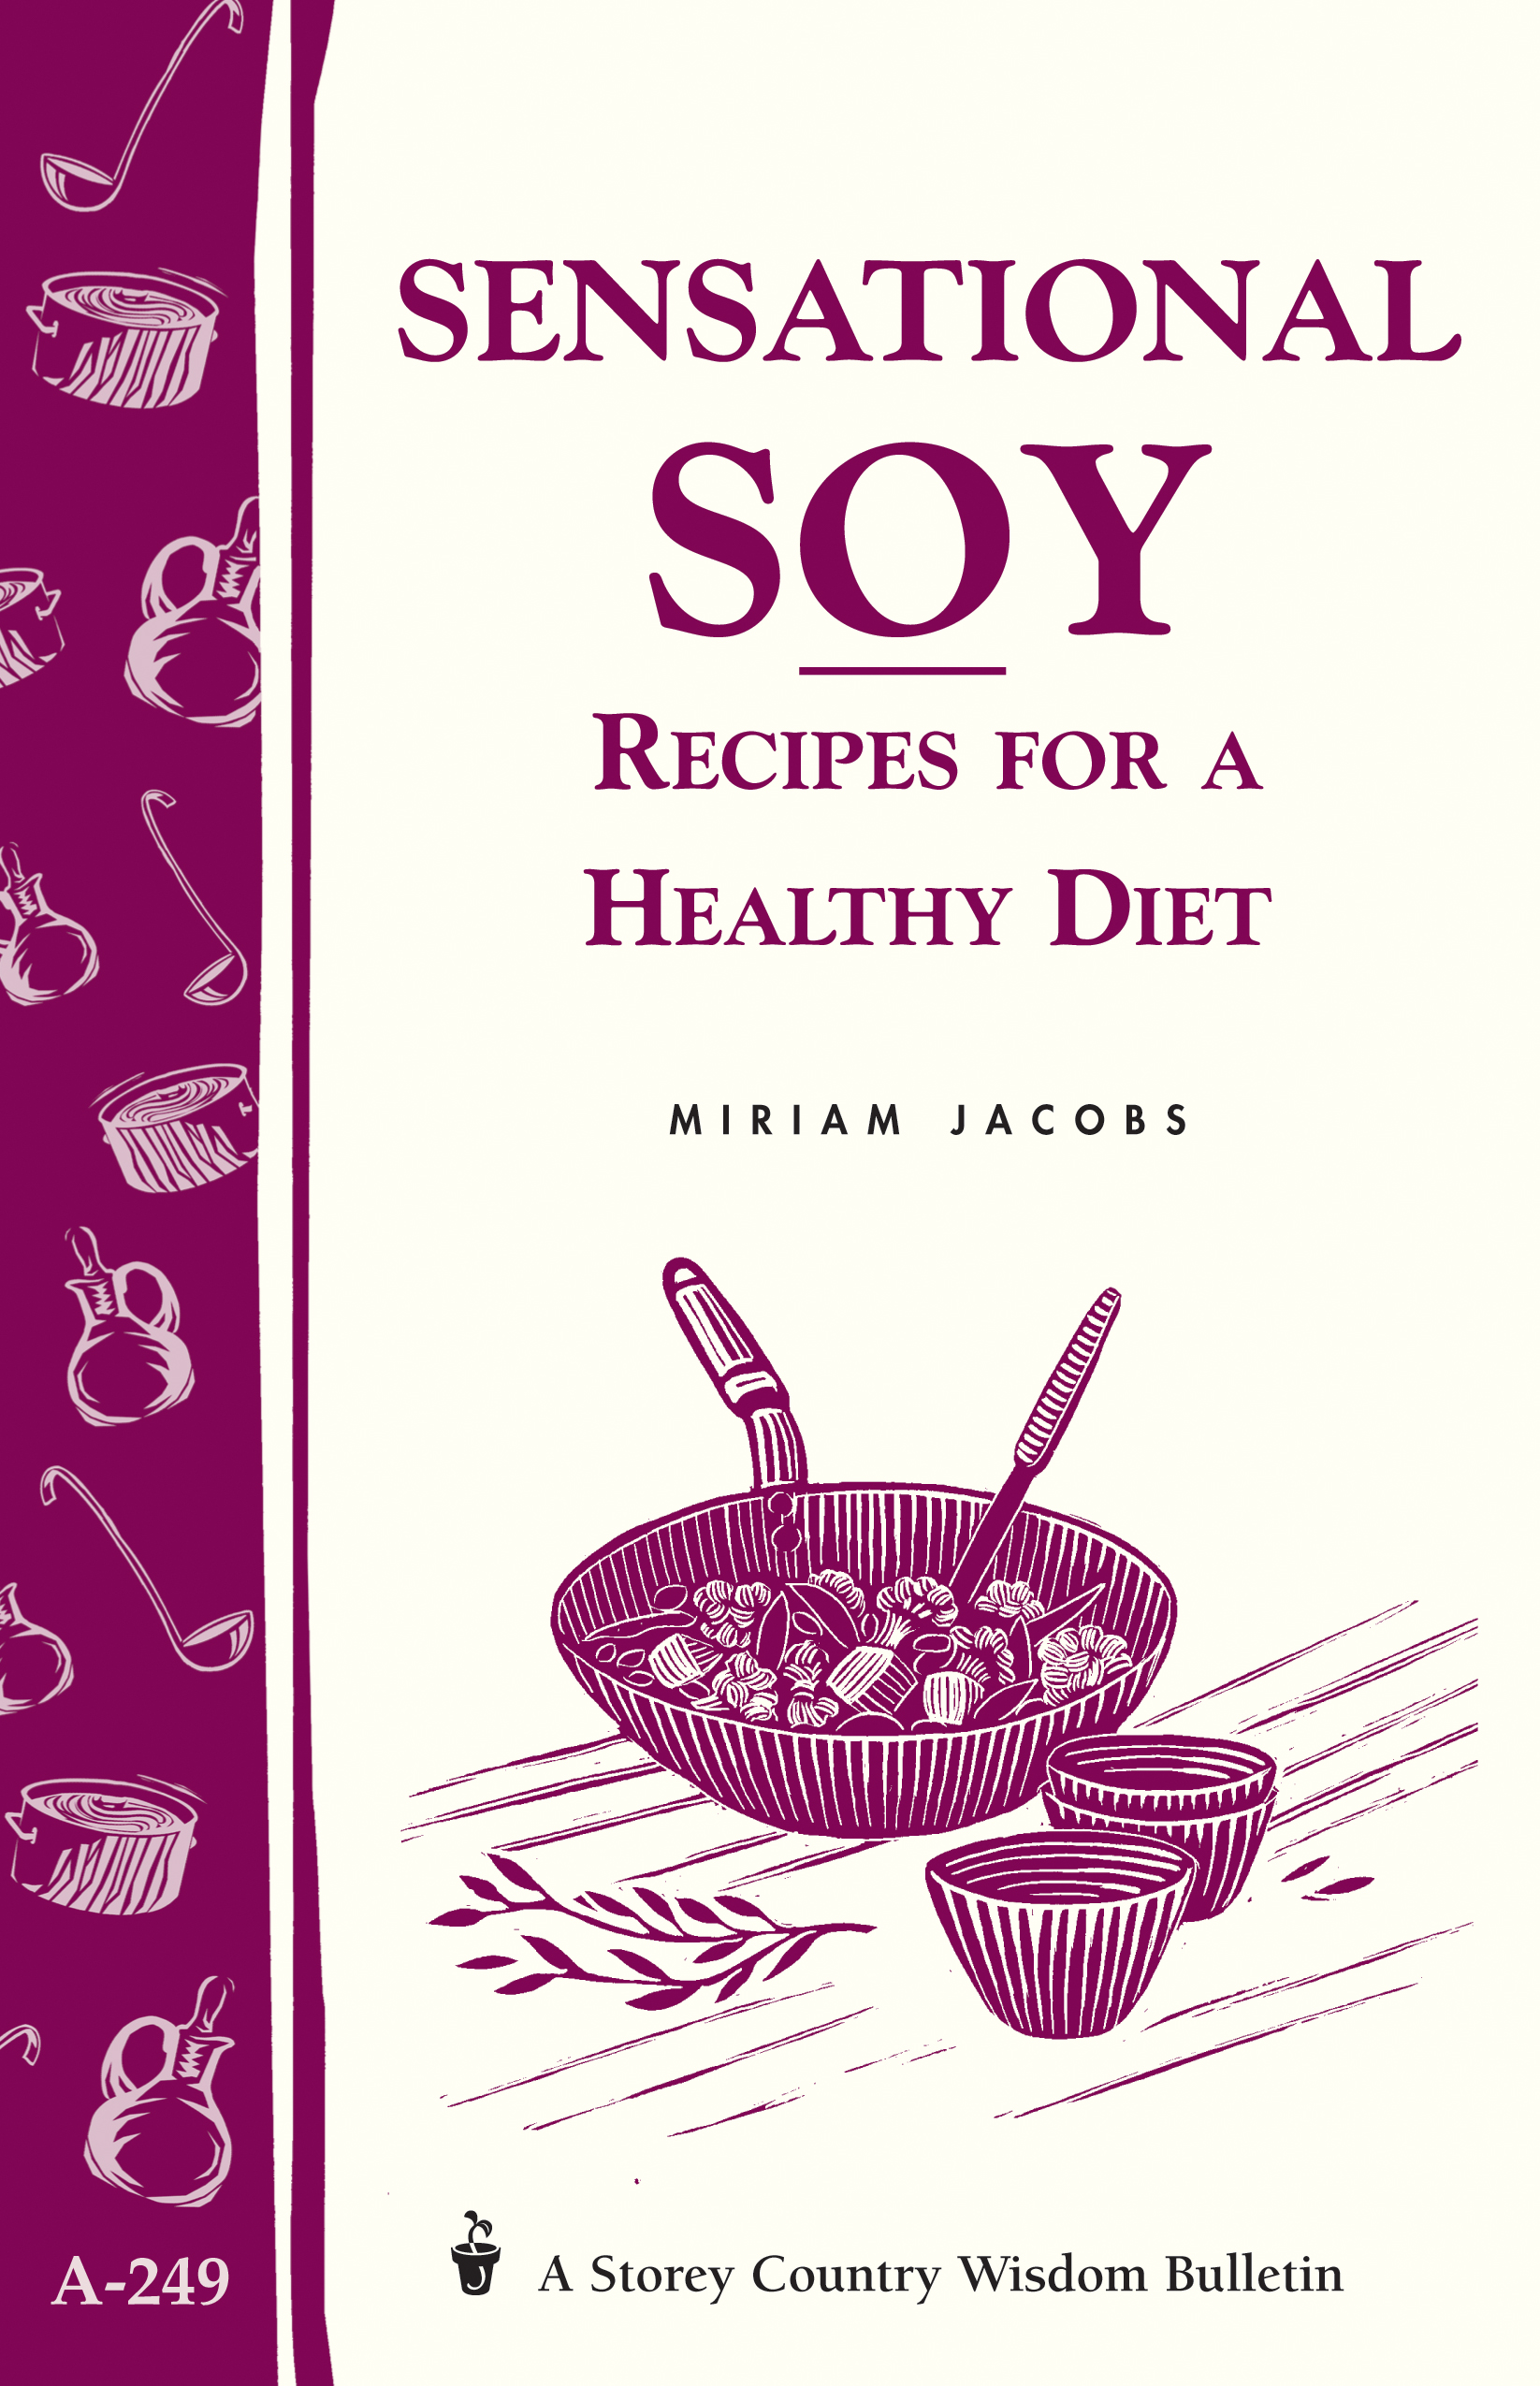 Sensational Soy: Recipes for a Healthy Diet Storey's Country Wisdom Bulletin A-249 - Miriam Jacobs